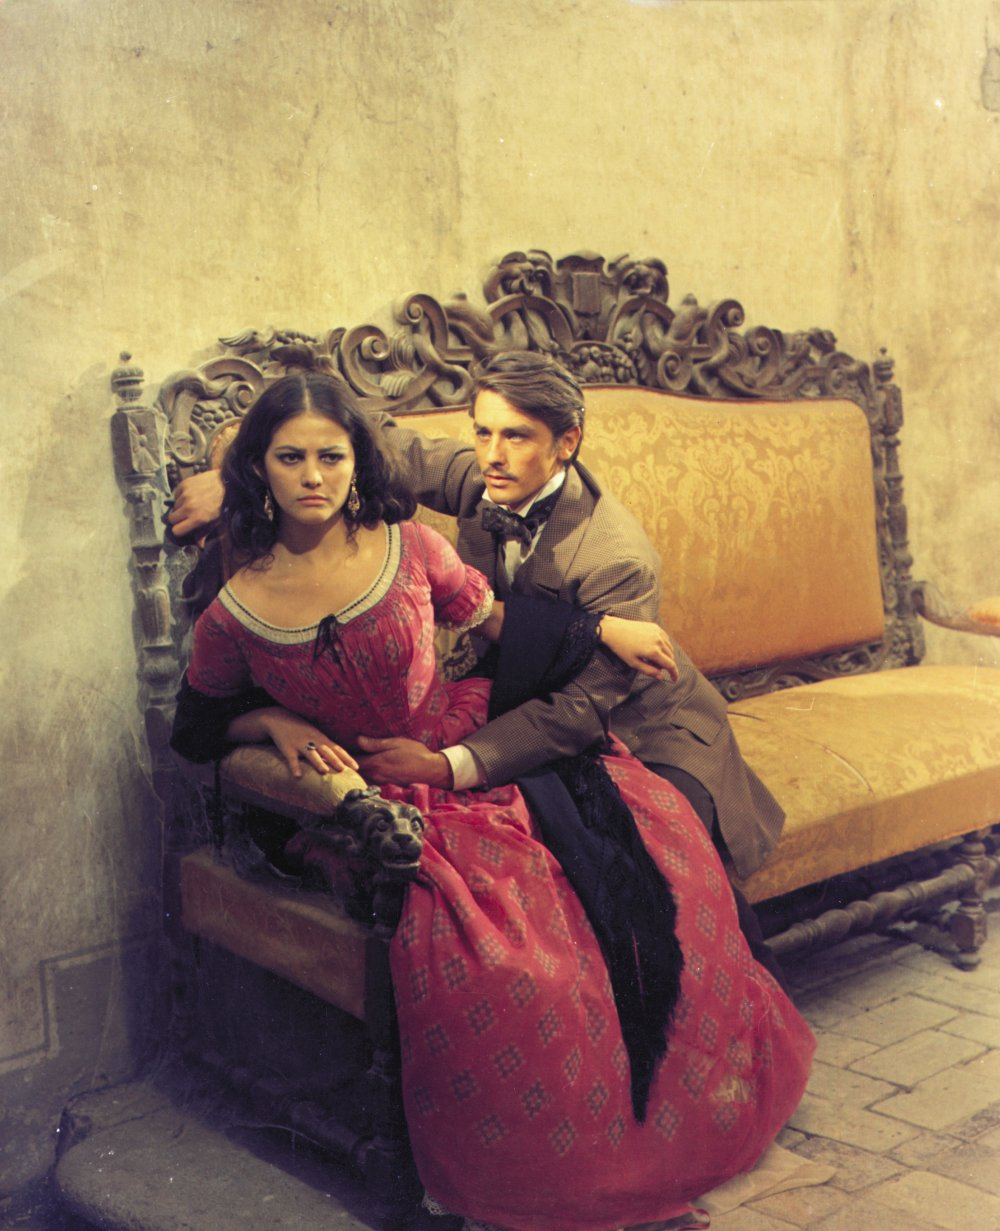 <strong>The Leopard (1963)</strong>  Luchino Visconti's lavish period epic stars Burt Lancaster, Claudia Cardinale and Alain Delon in the story of an ageing aristocrat being eclipsed by the times